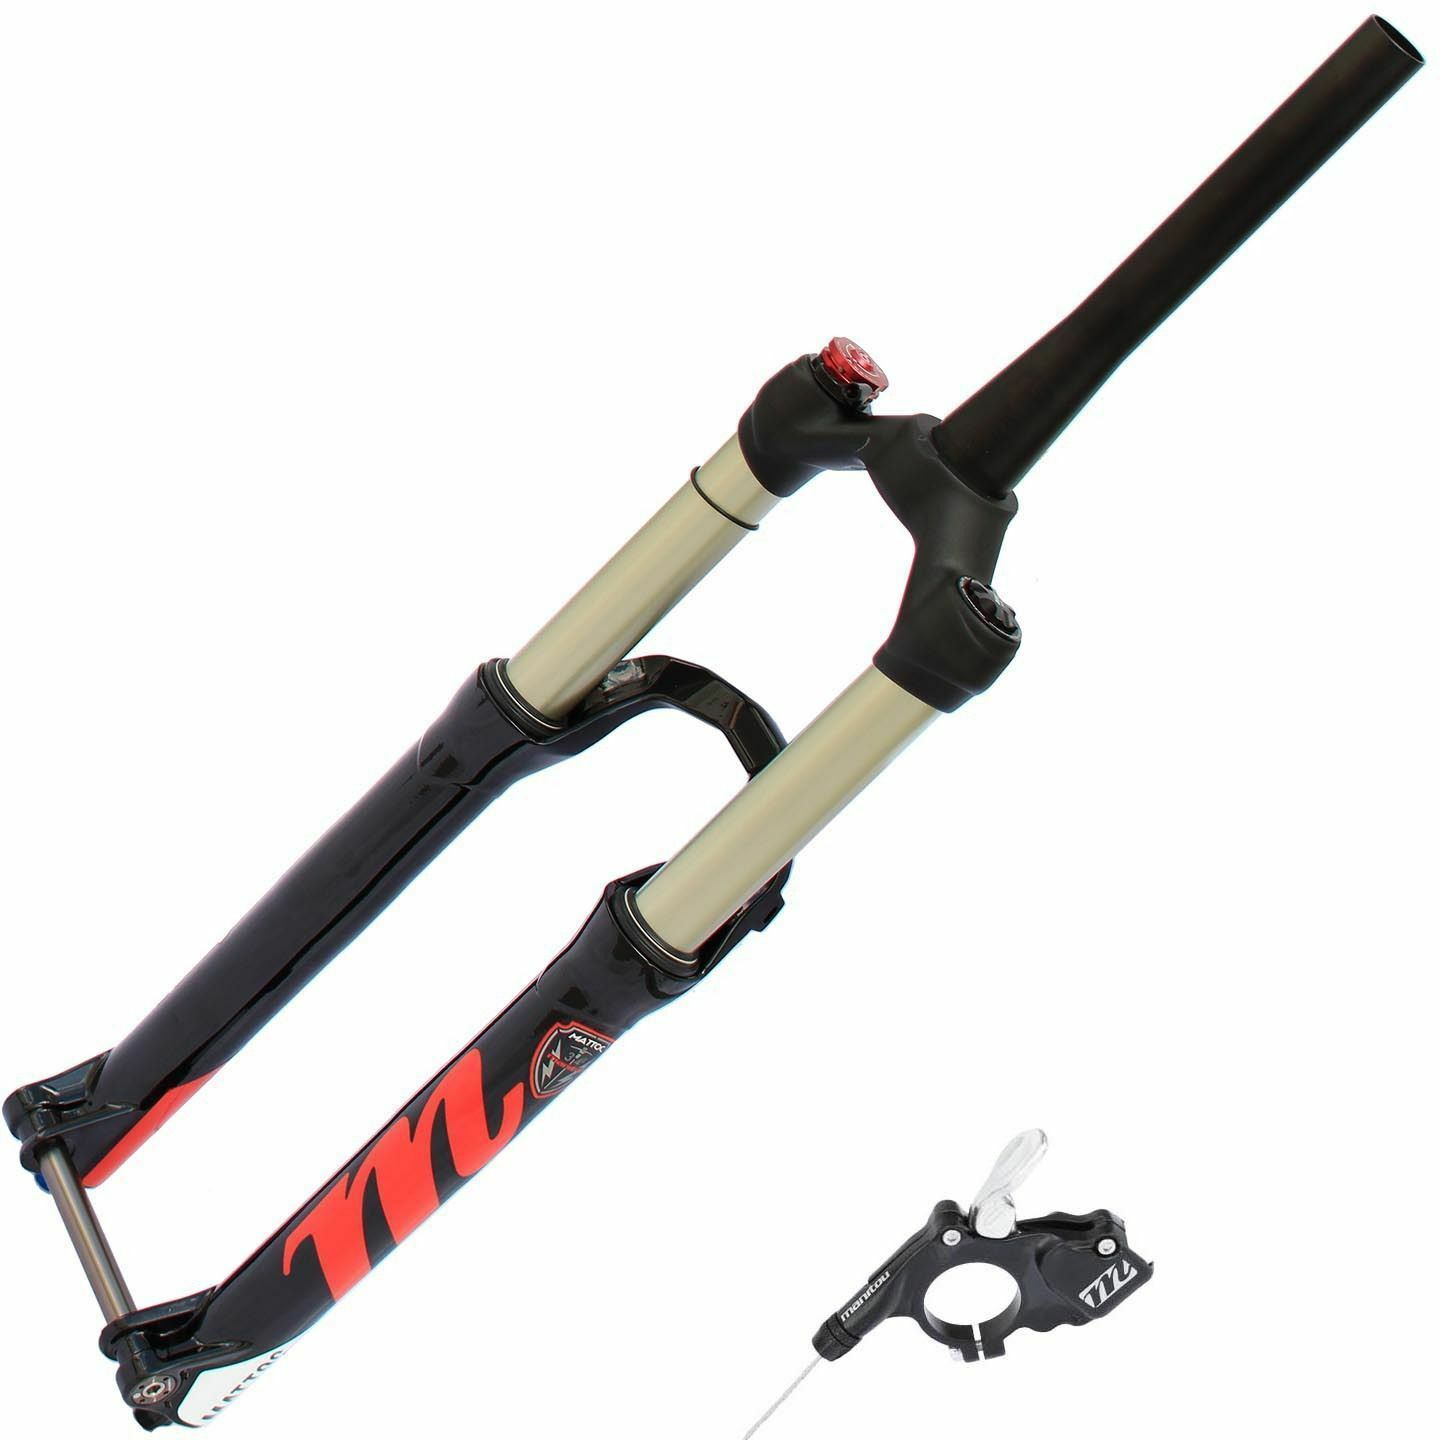 Manitou Mattoc Comp Mountain Bike Fork 27.5  130mm Travel 1.5  Tapered 15mm